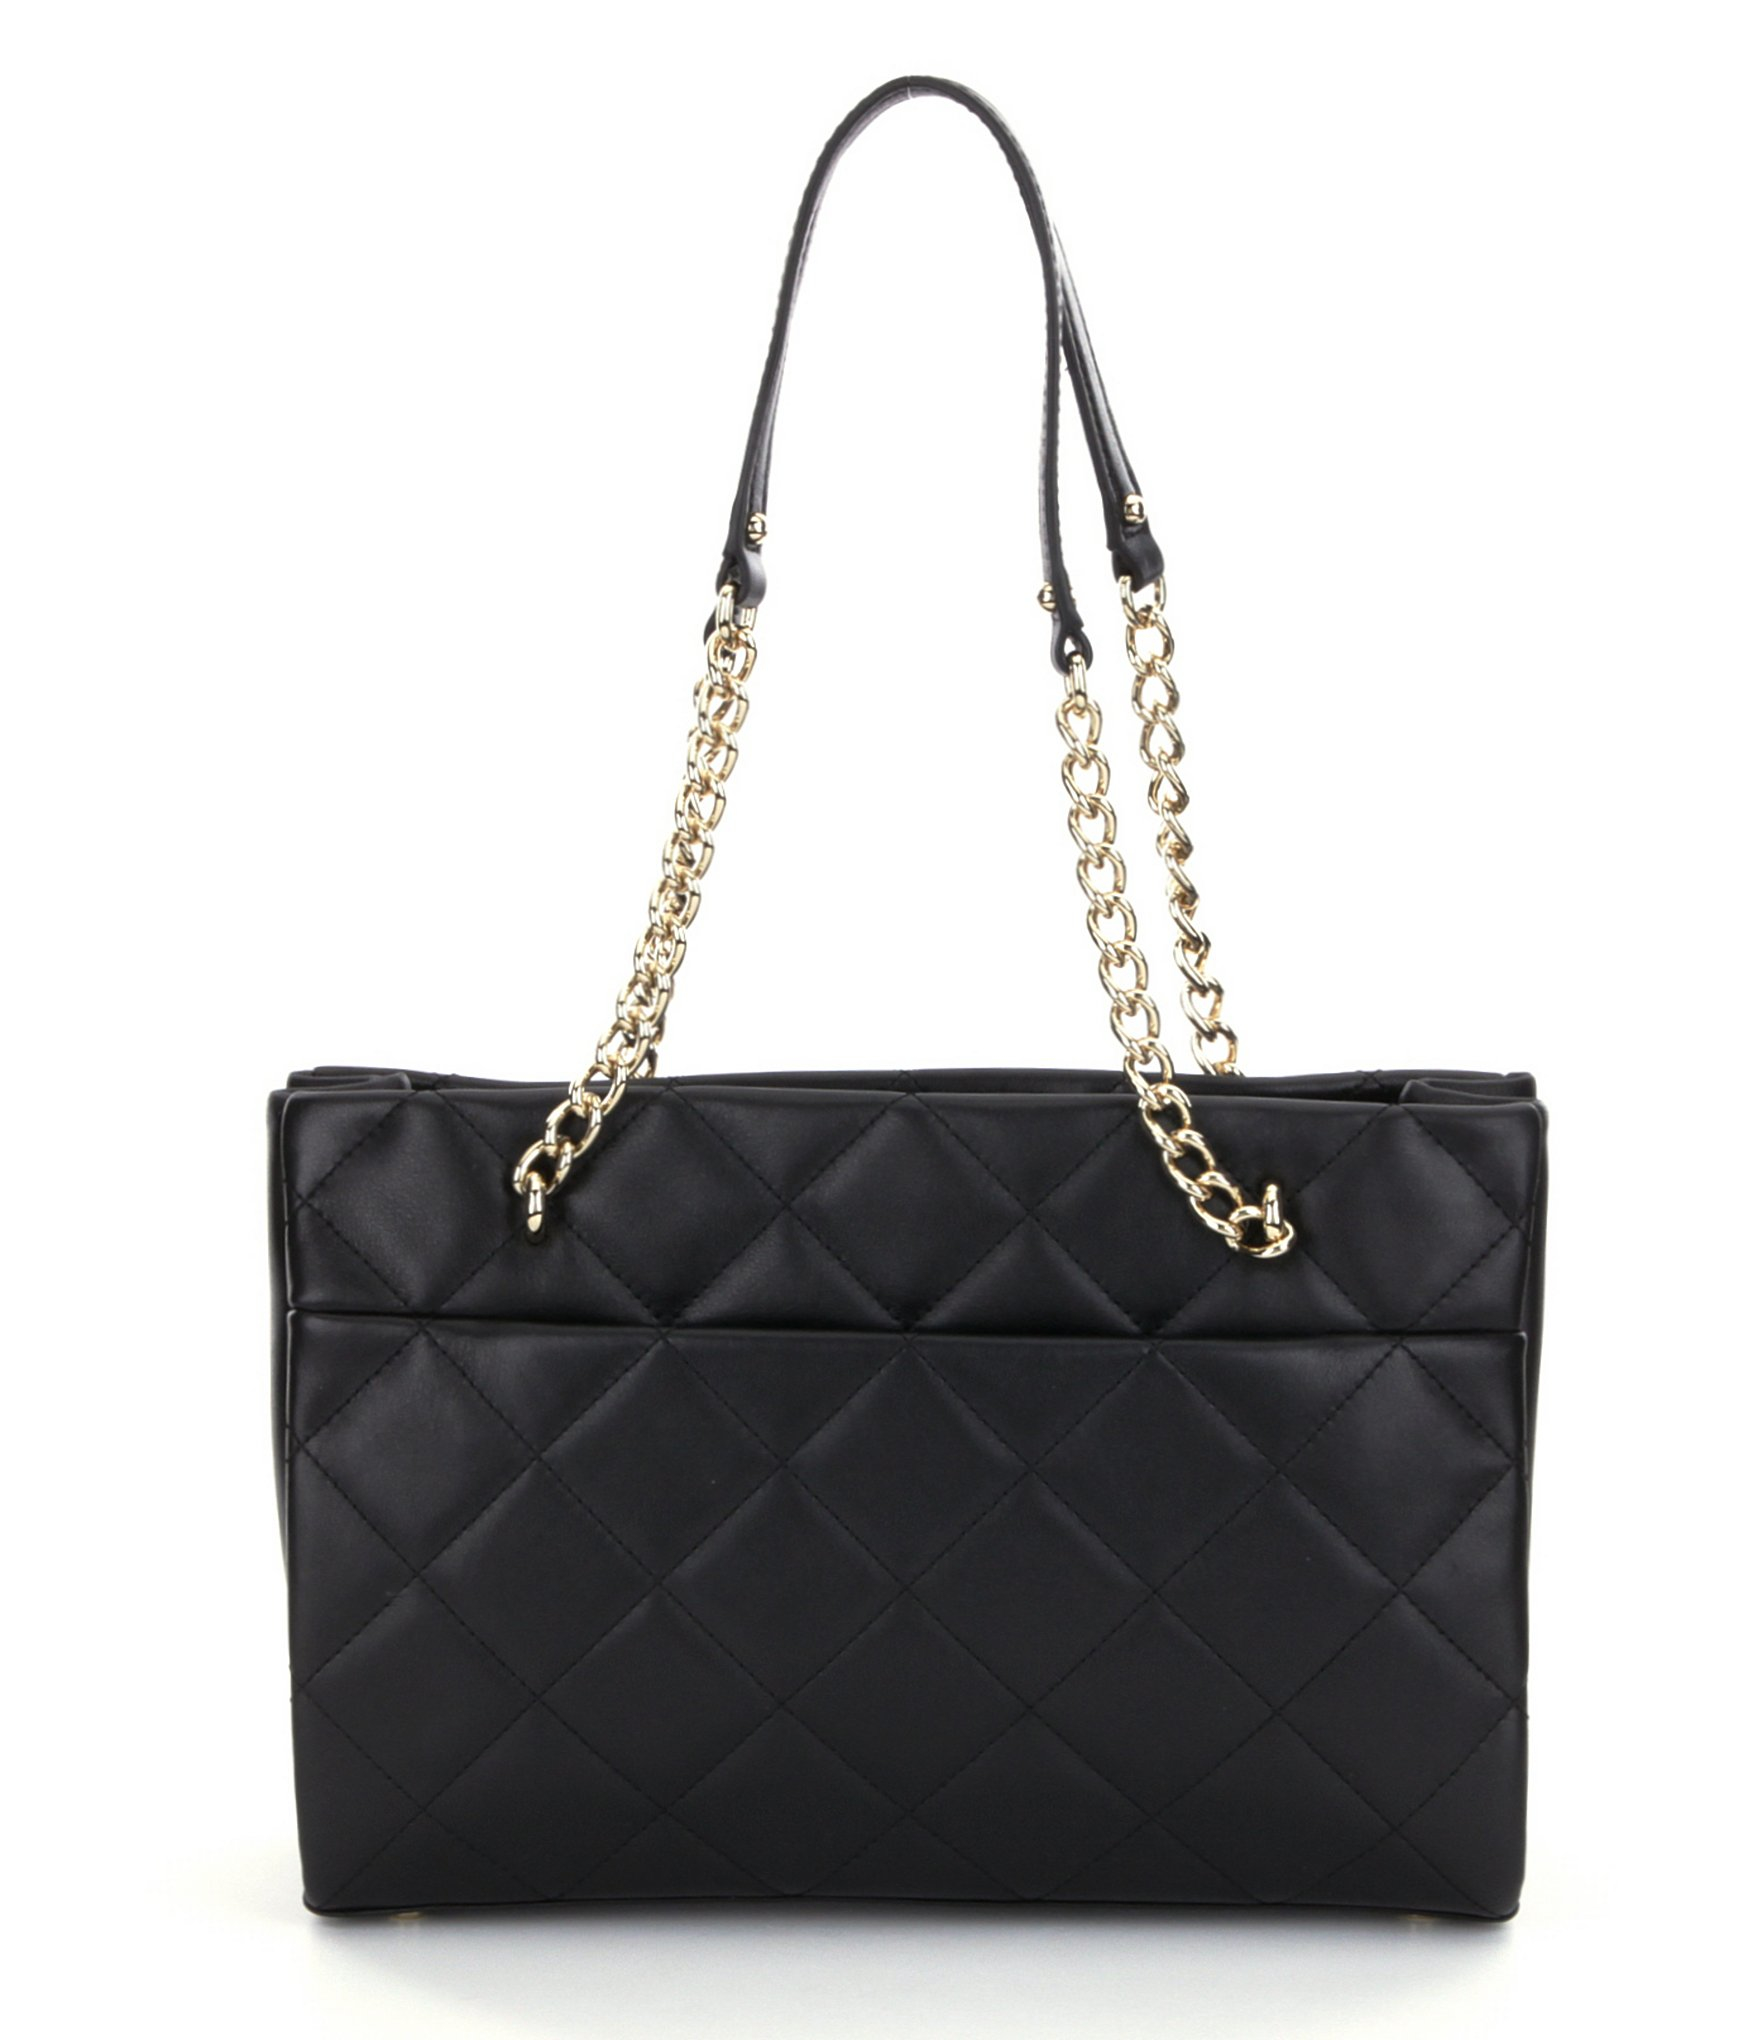 76afe01e6f12 Lyst - Kate Spade Emerson Place Small Phoebe Quilted Chain Strap ...